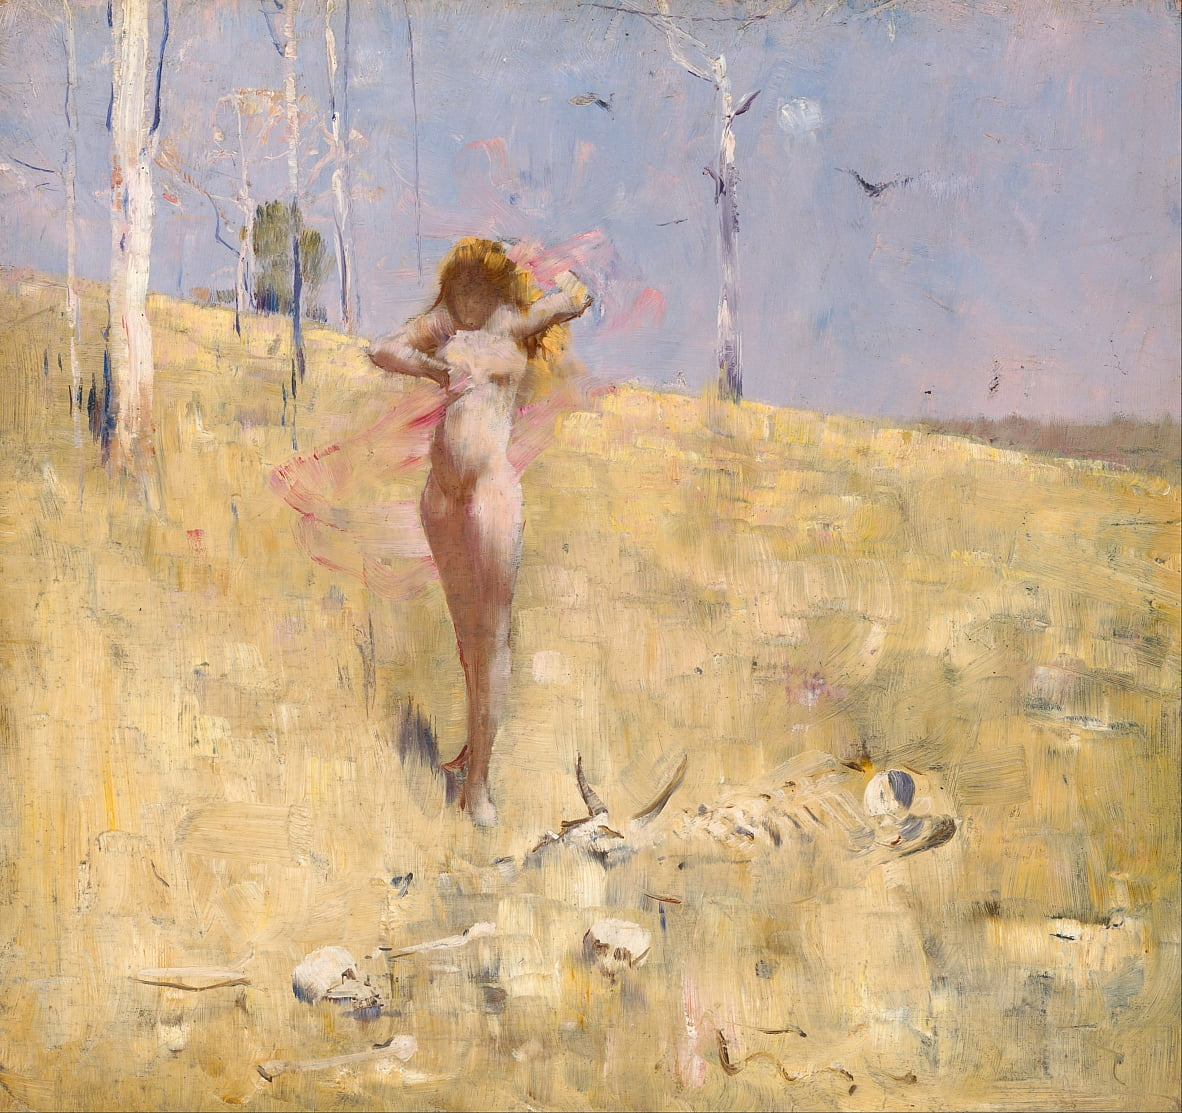 The spirit of the drought by Arthur Streeton